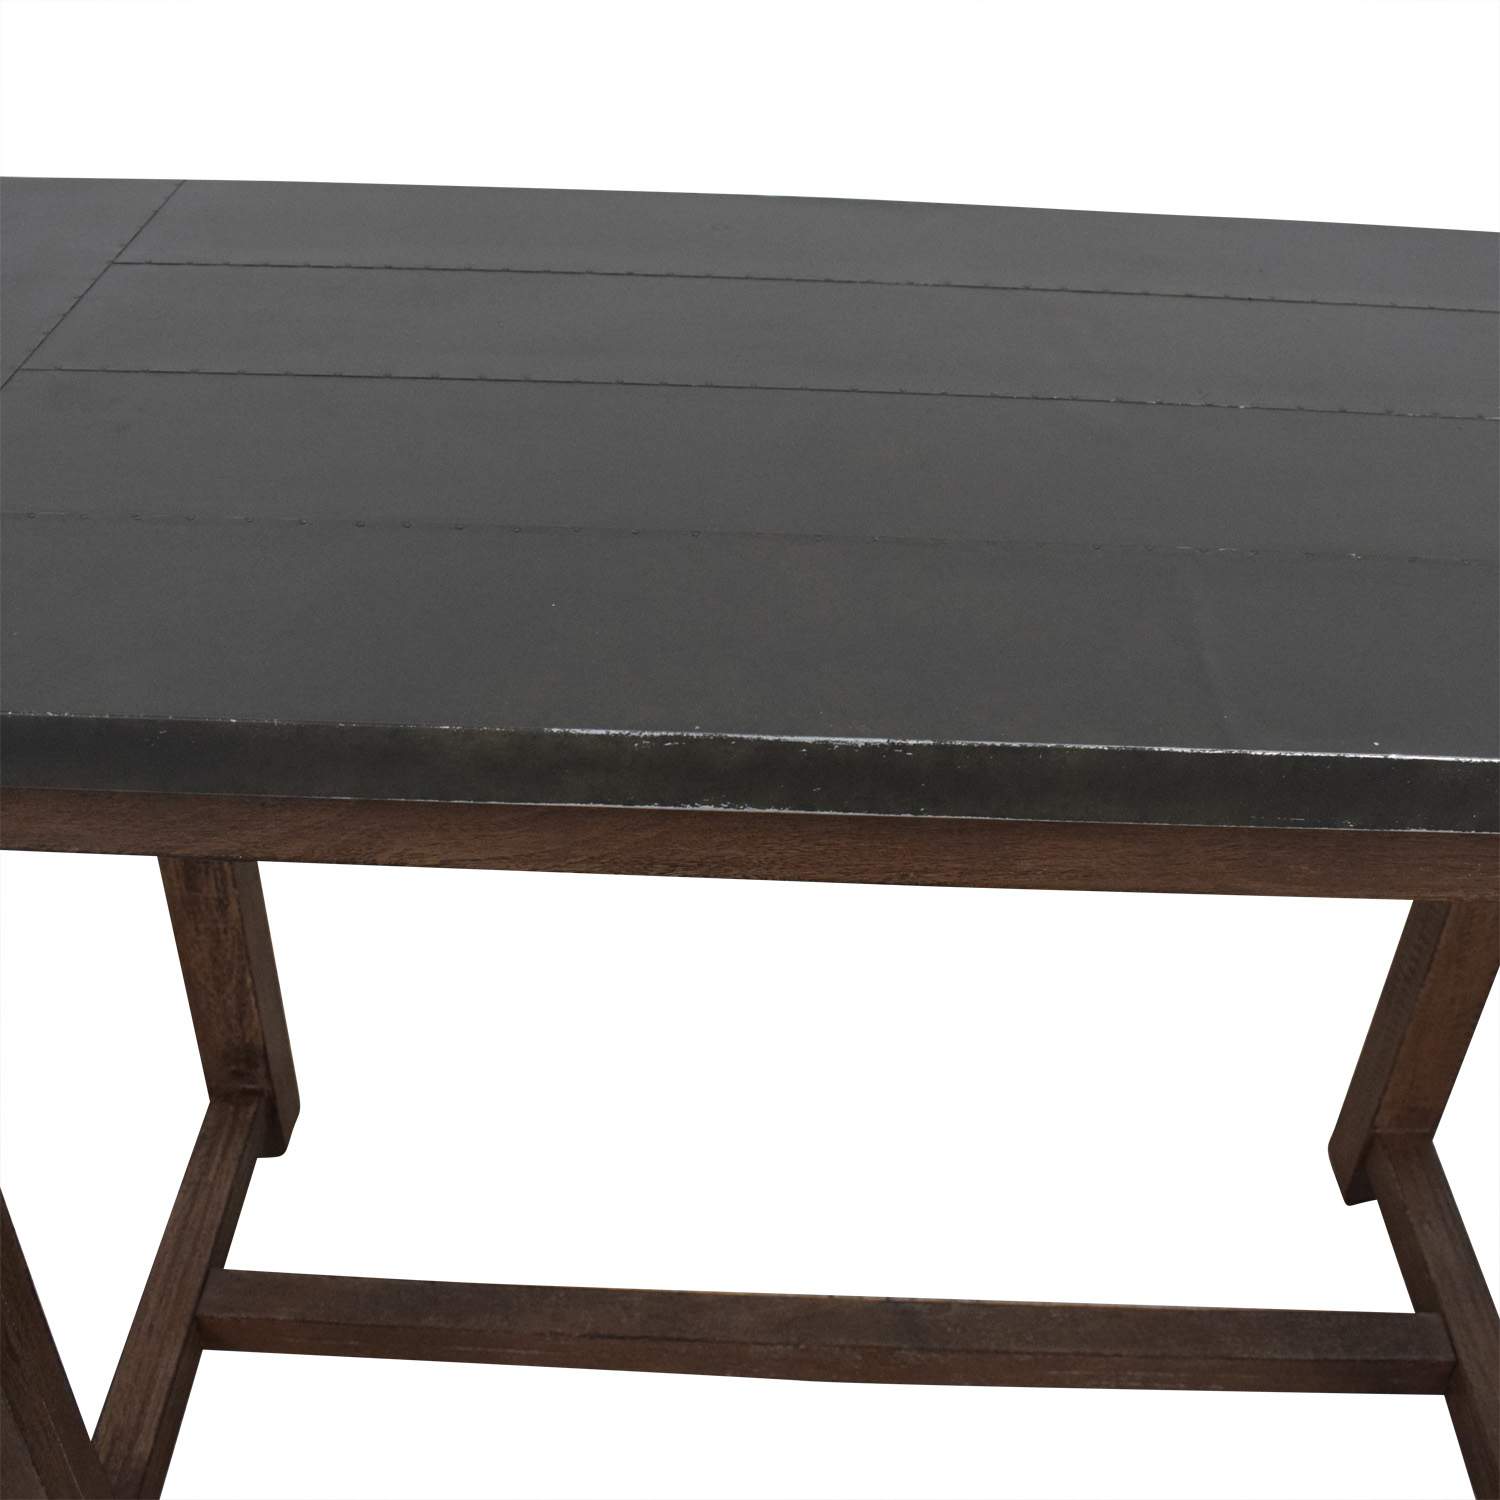 Crate & Barrel Crate & Barrel Galvin High Dining Table price